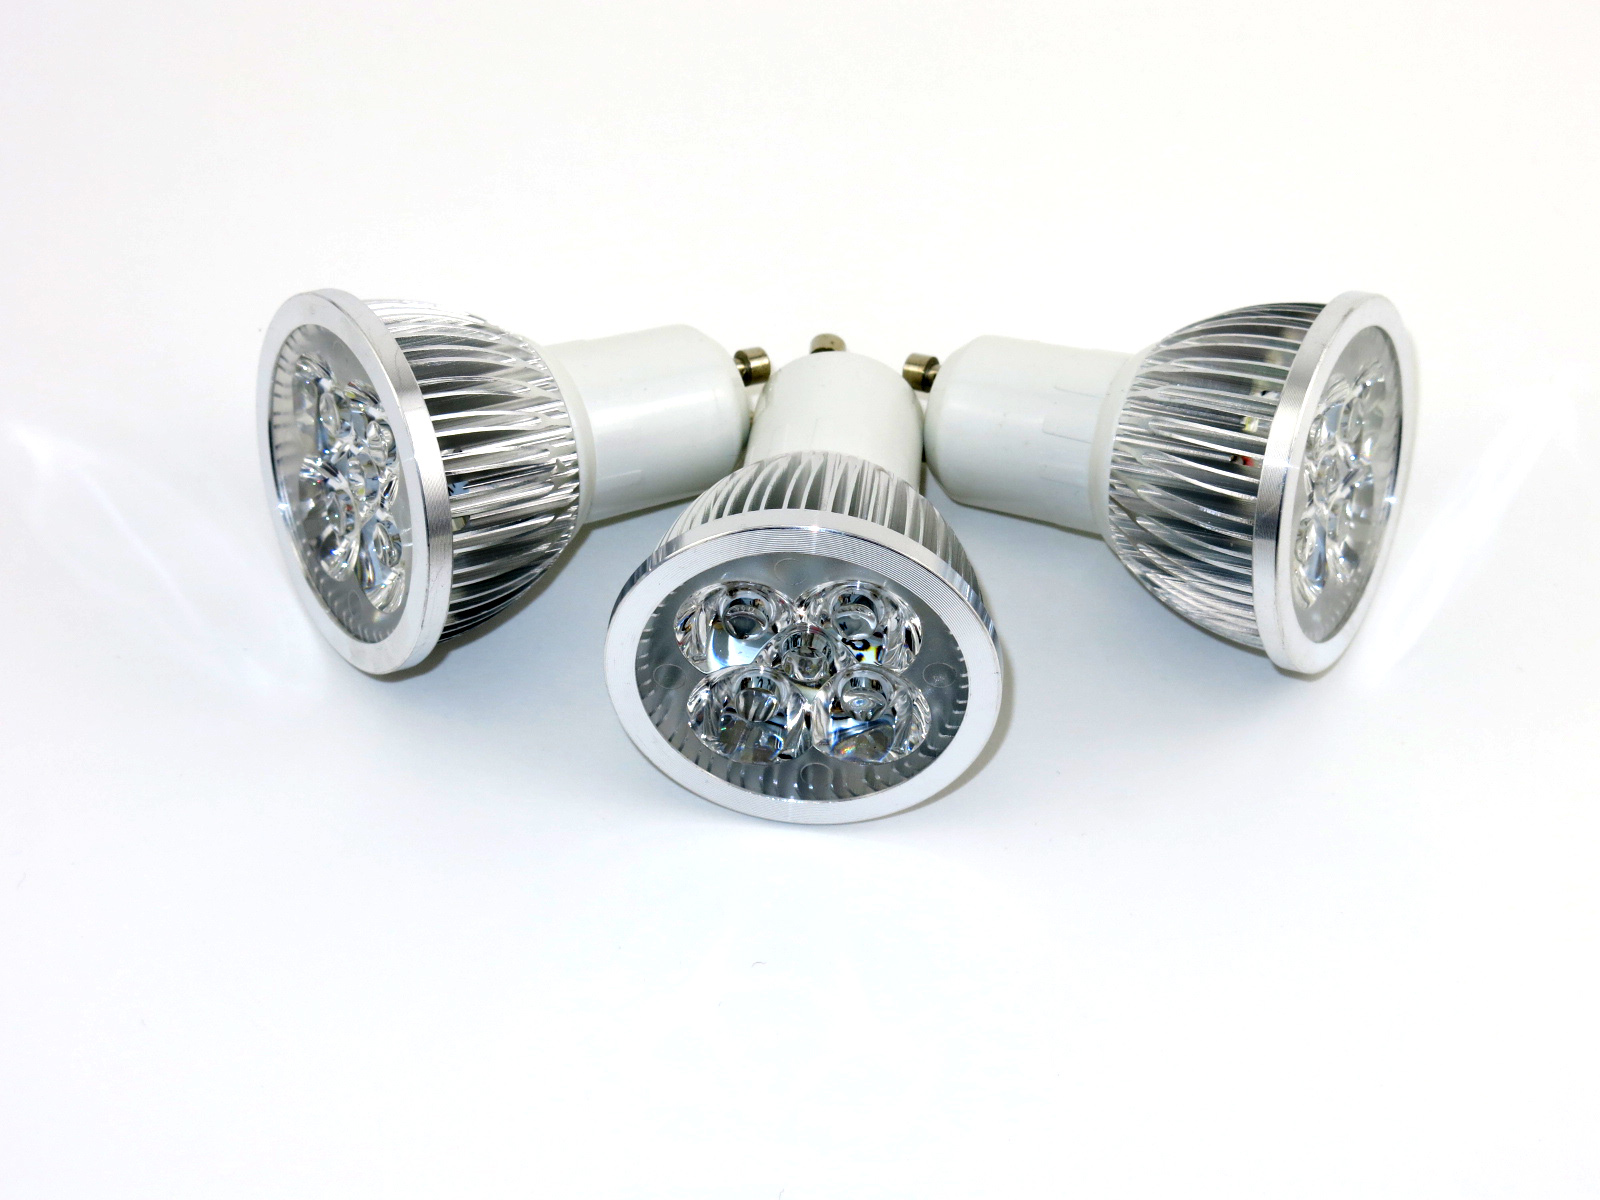 Gu10 Led 4w Gu10 Led Bulb Ac85 265v Cold White 60 Degree Beam